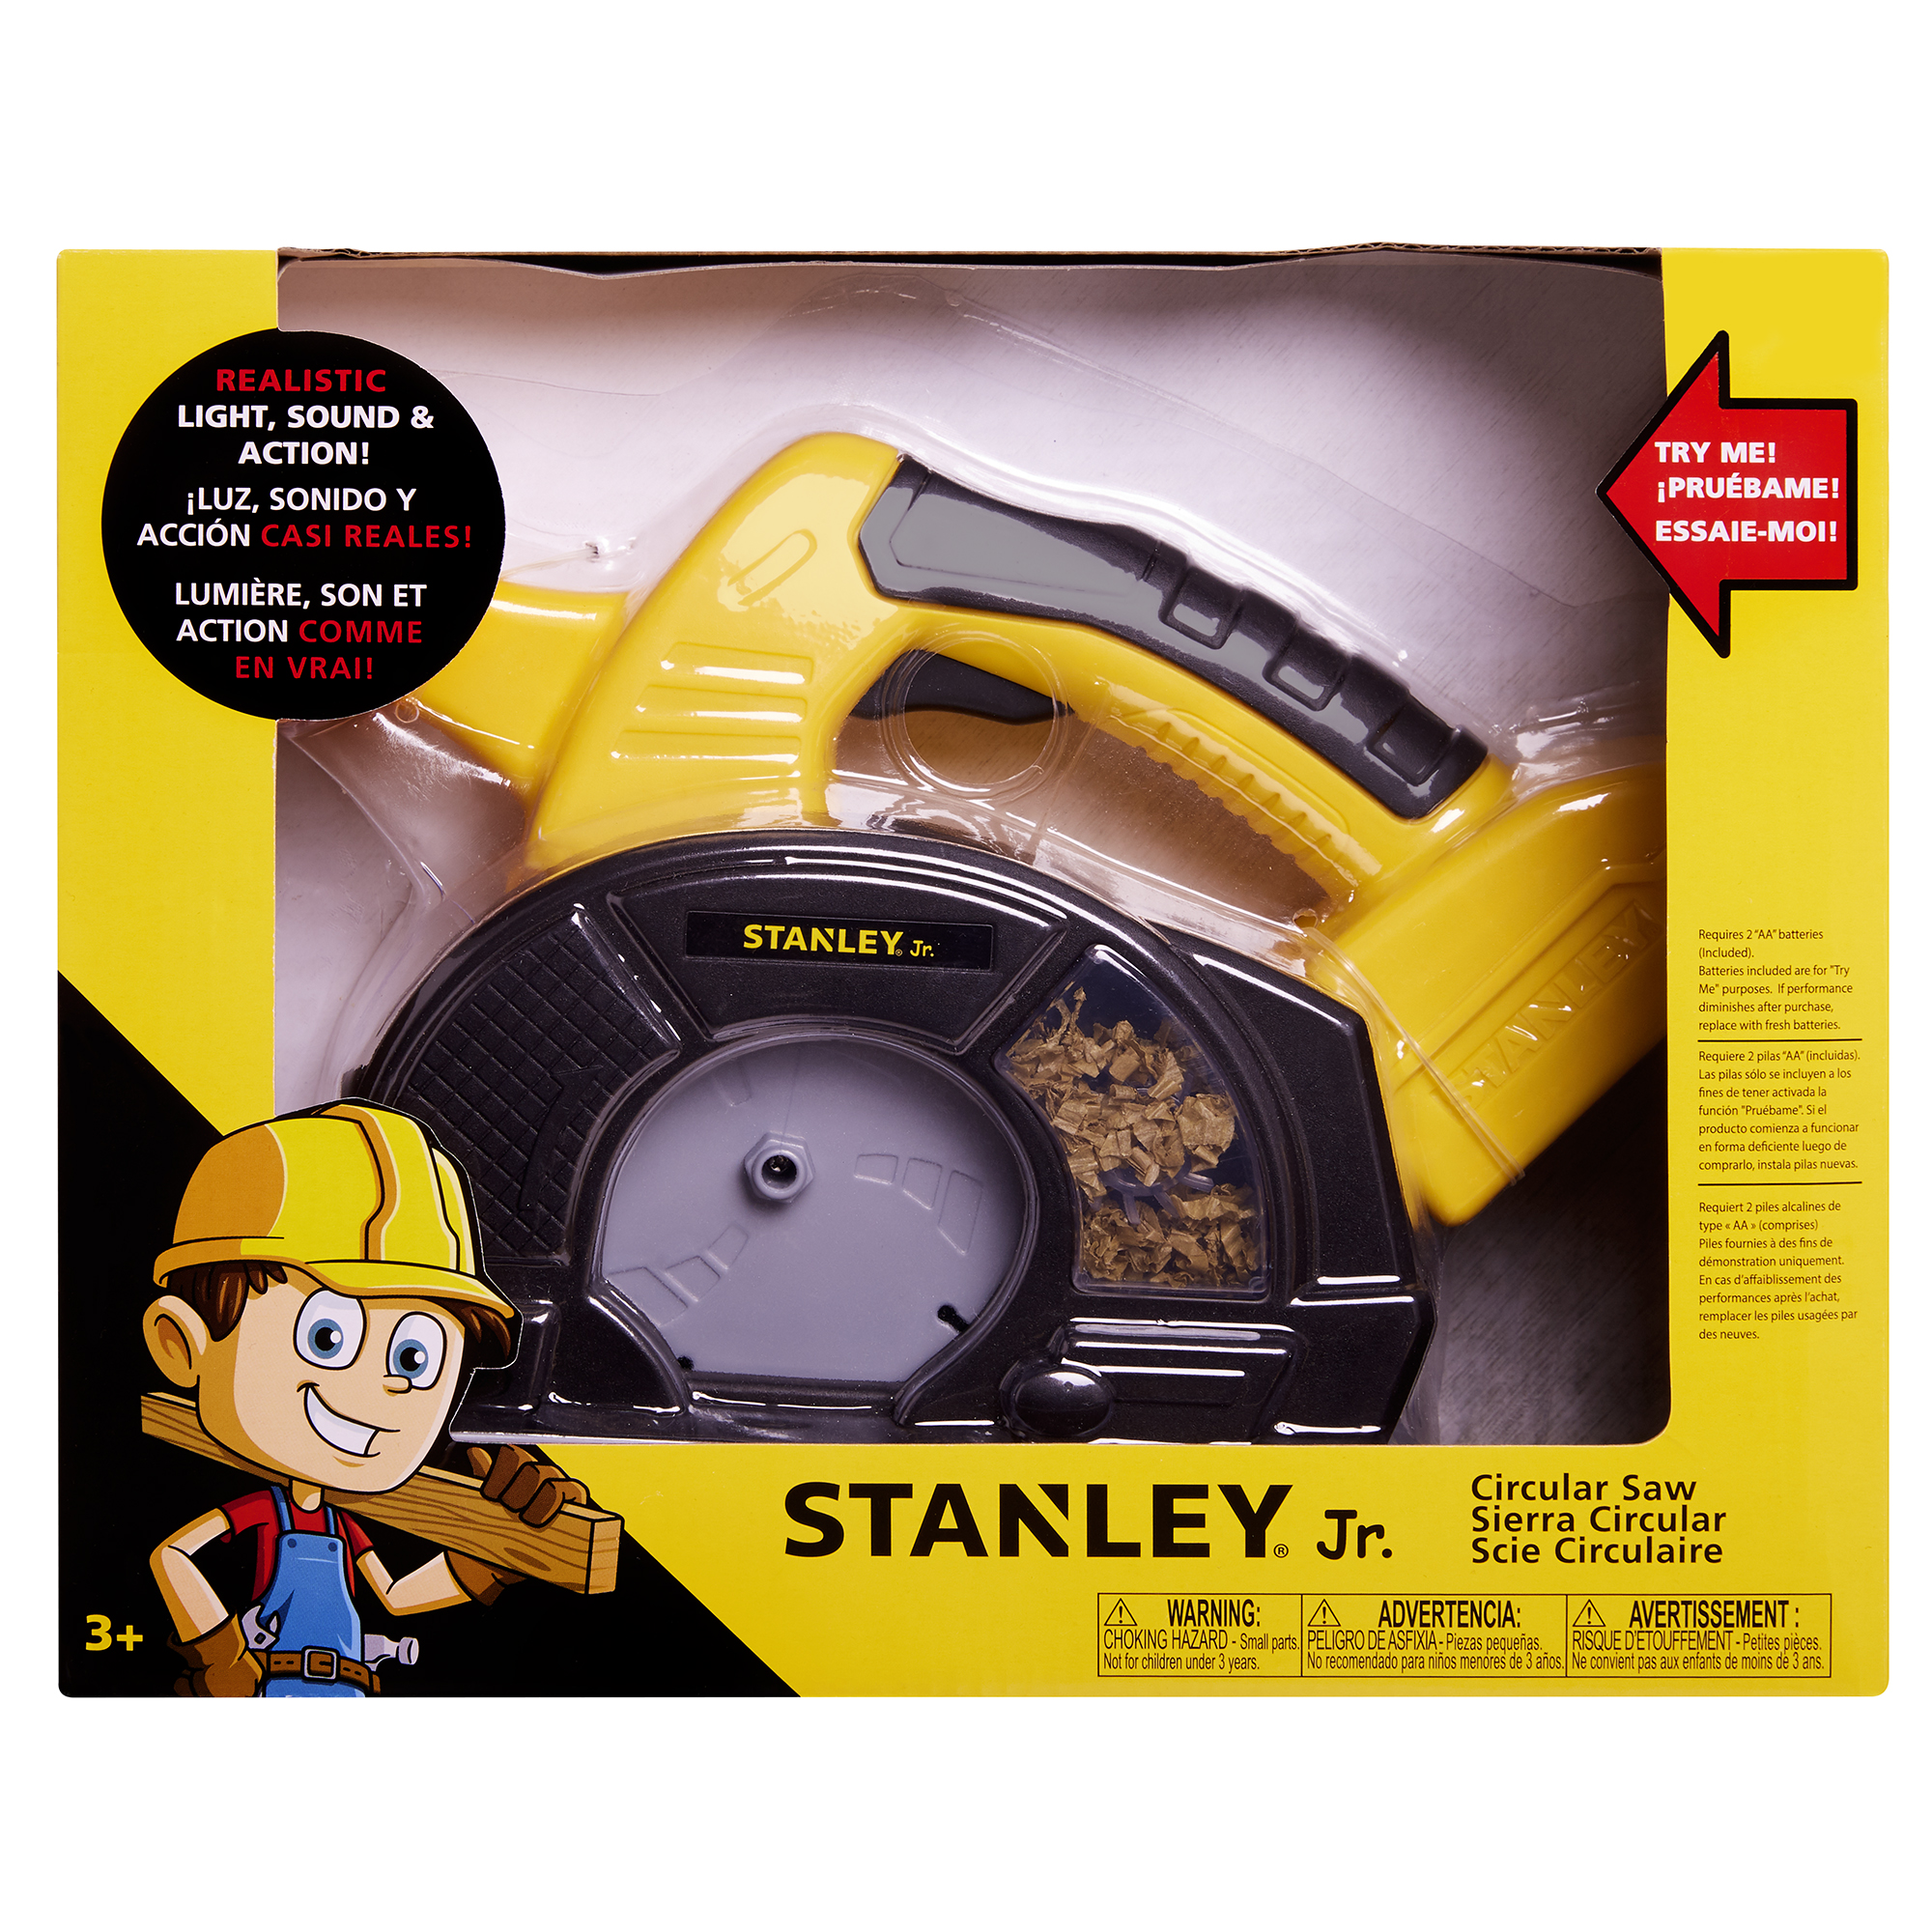 Stanley Jr. Circular Saw